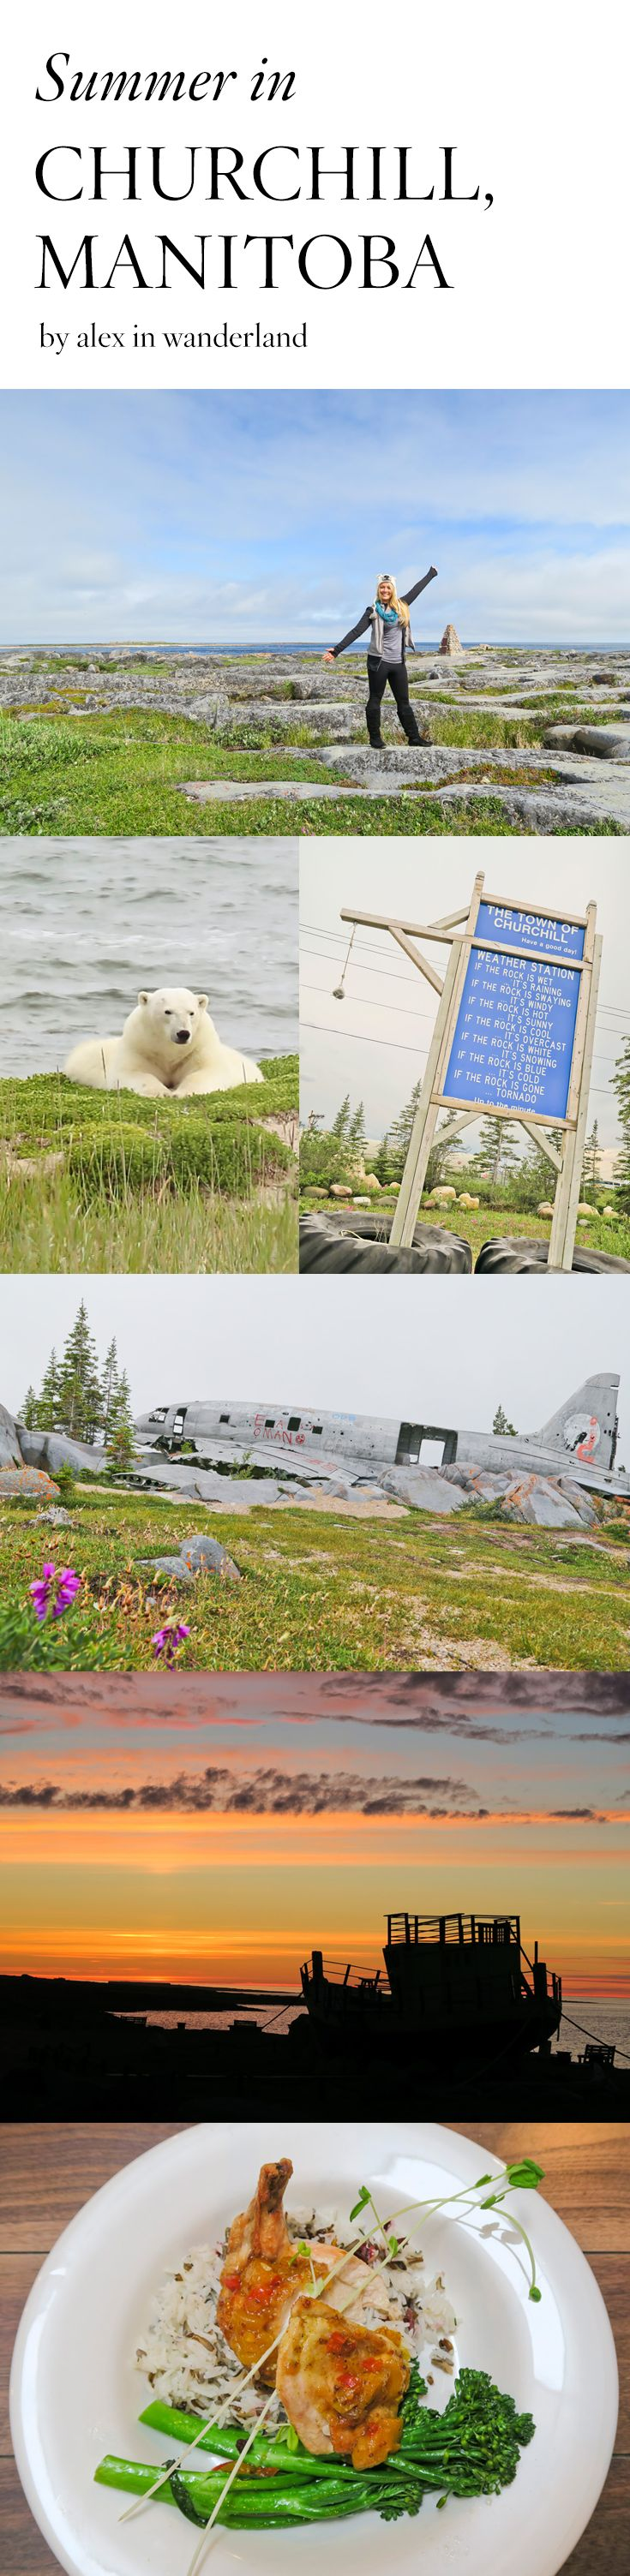 Belugas, bears and blooms. Summer in Churchill, Manitoba.